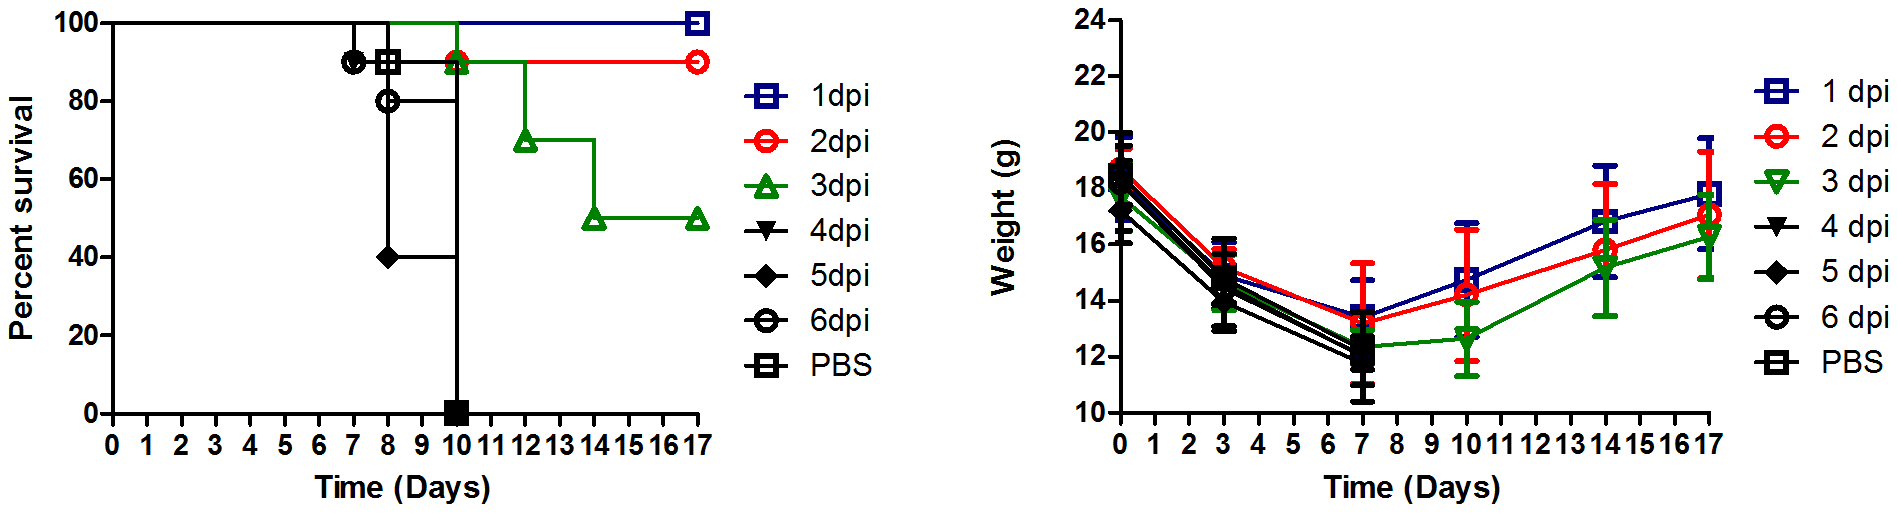 Antibody A06 therapy protects Balb/C mice from death by 2009 pandemic H1N1 influenza infection.